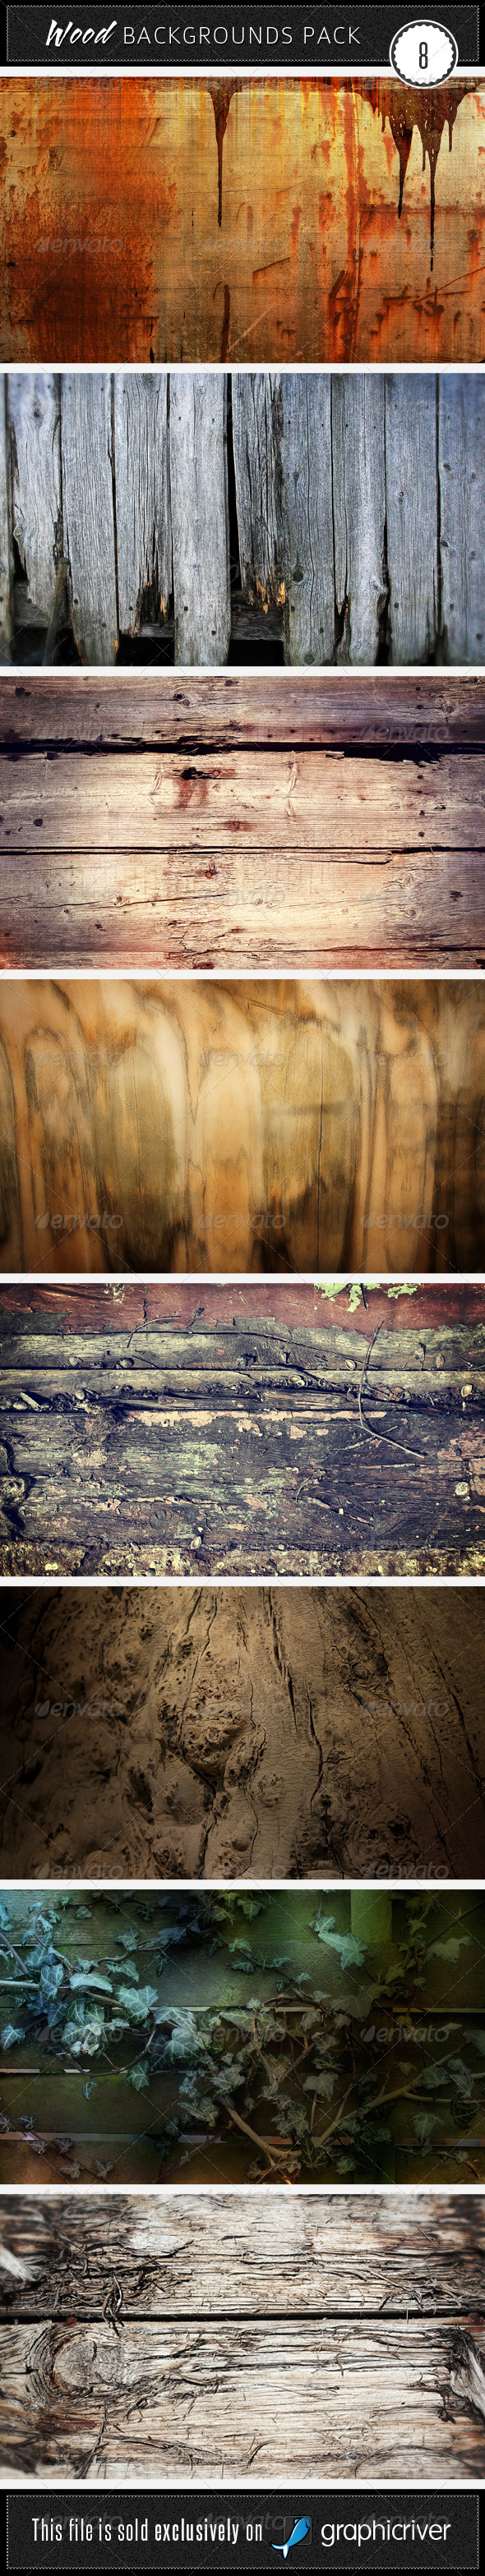 Wood Backgrounds Pack 8 - Wood Textures